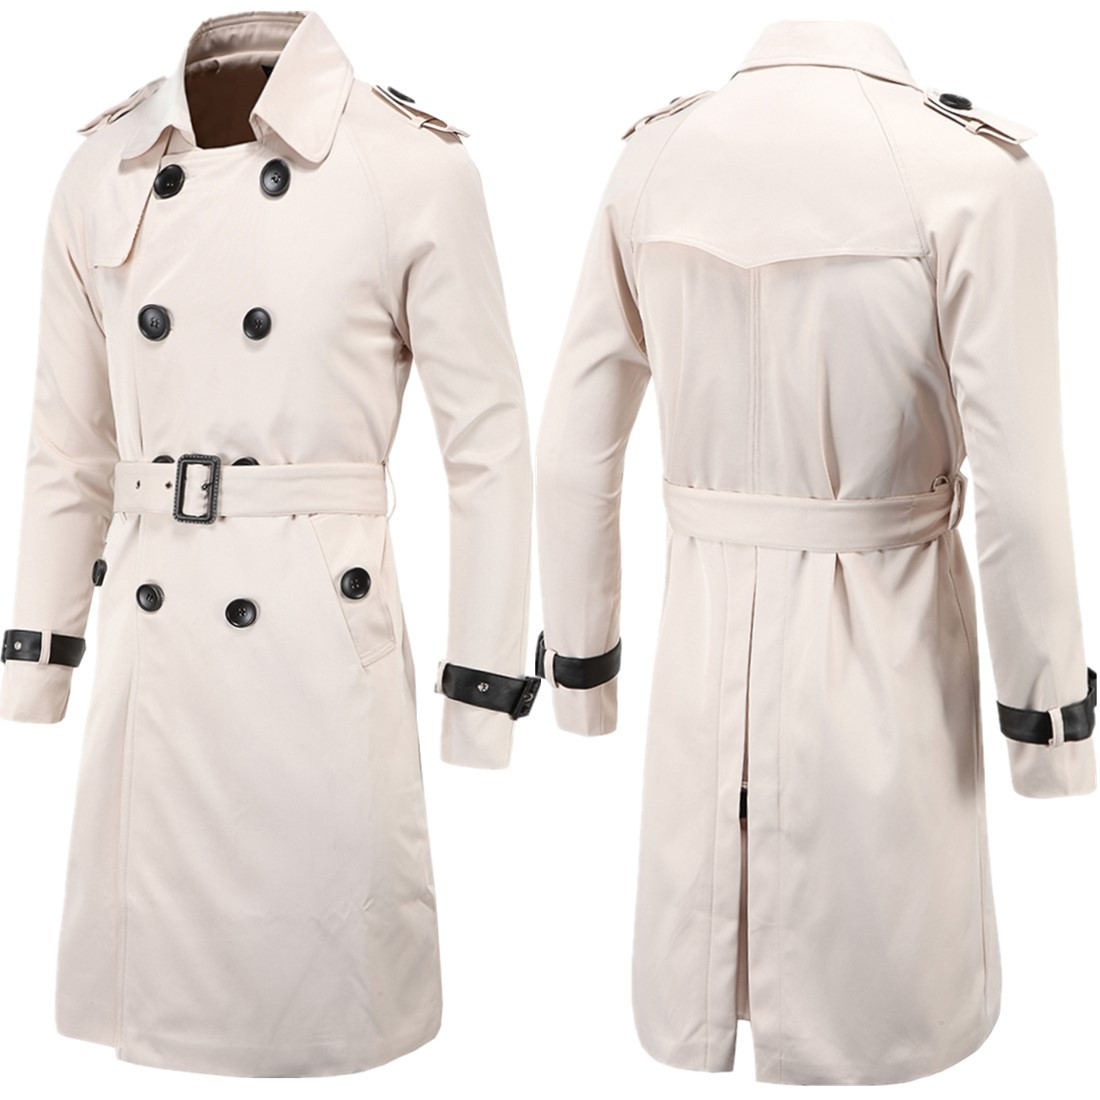 Aowofs Fashion Men'S Wear 2019 Spring Clothing Boutique Europe And America Long Slim Fit Double Breasted Trench Coat MEN'S Coat